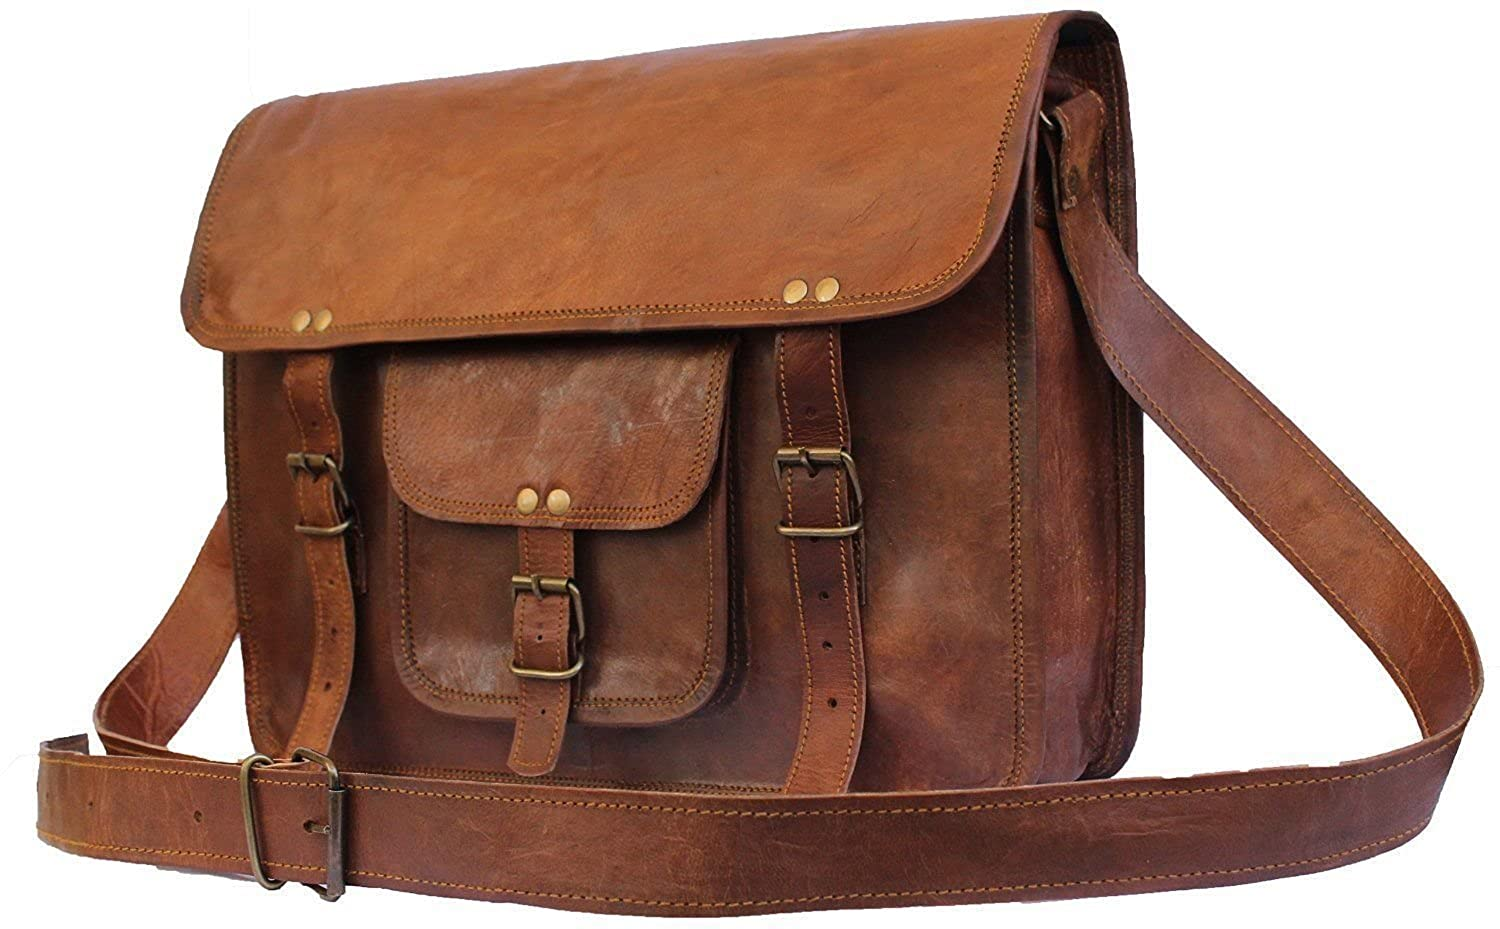 Shivam leather craft Adult 15 Real Leather Laptop Messenger Bag 11X15